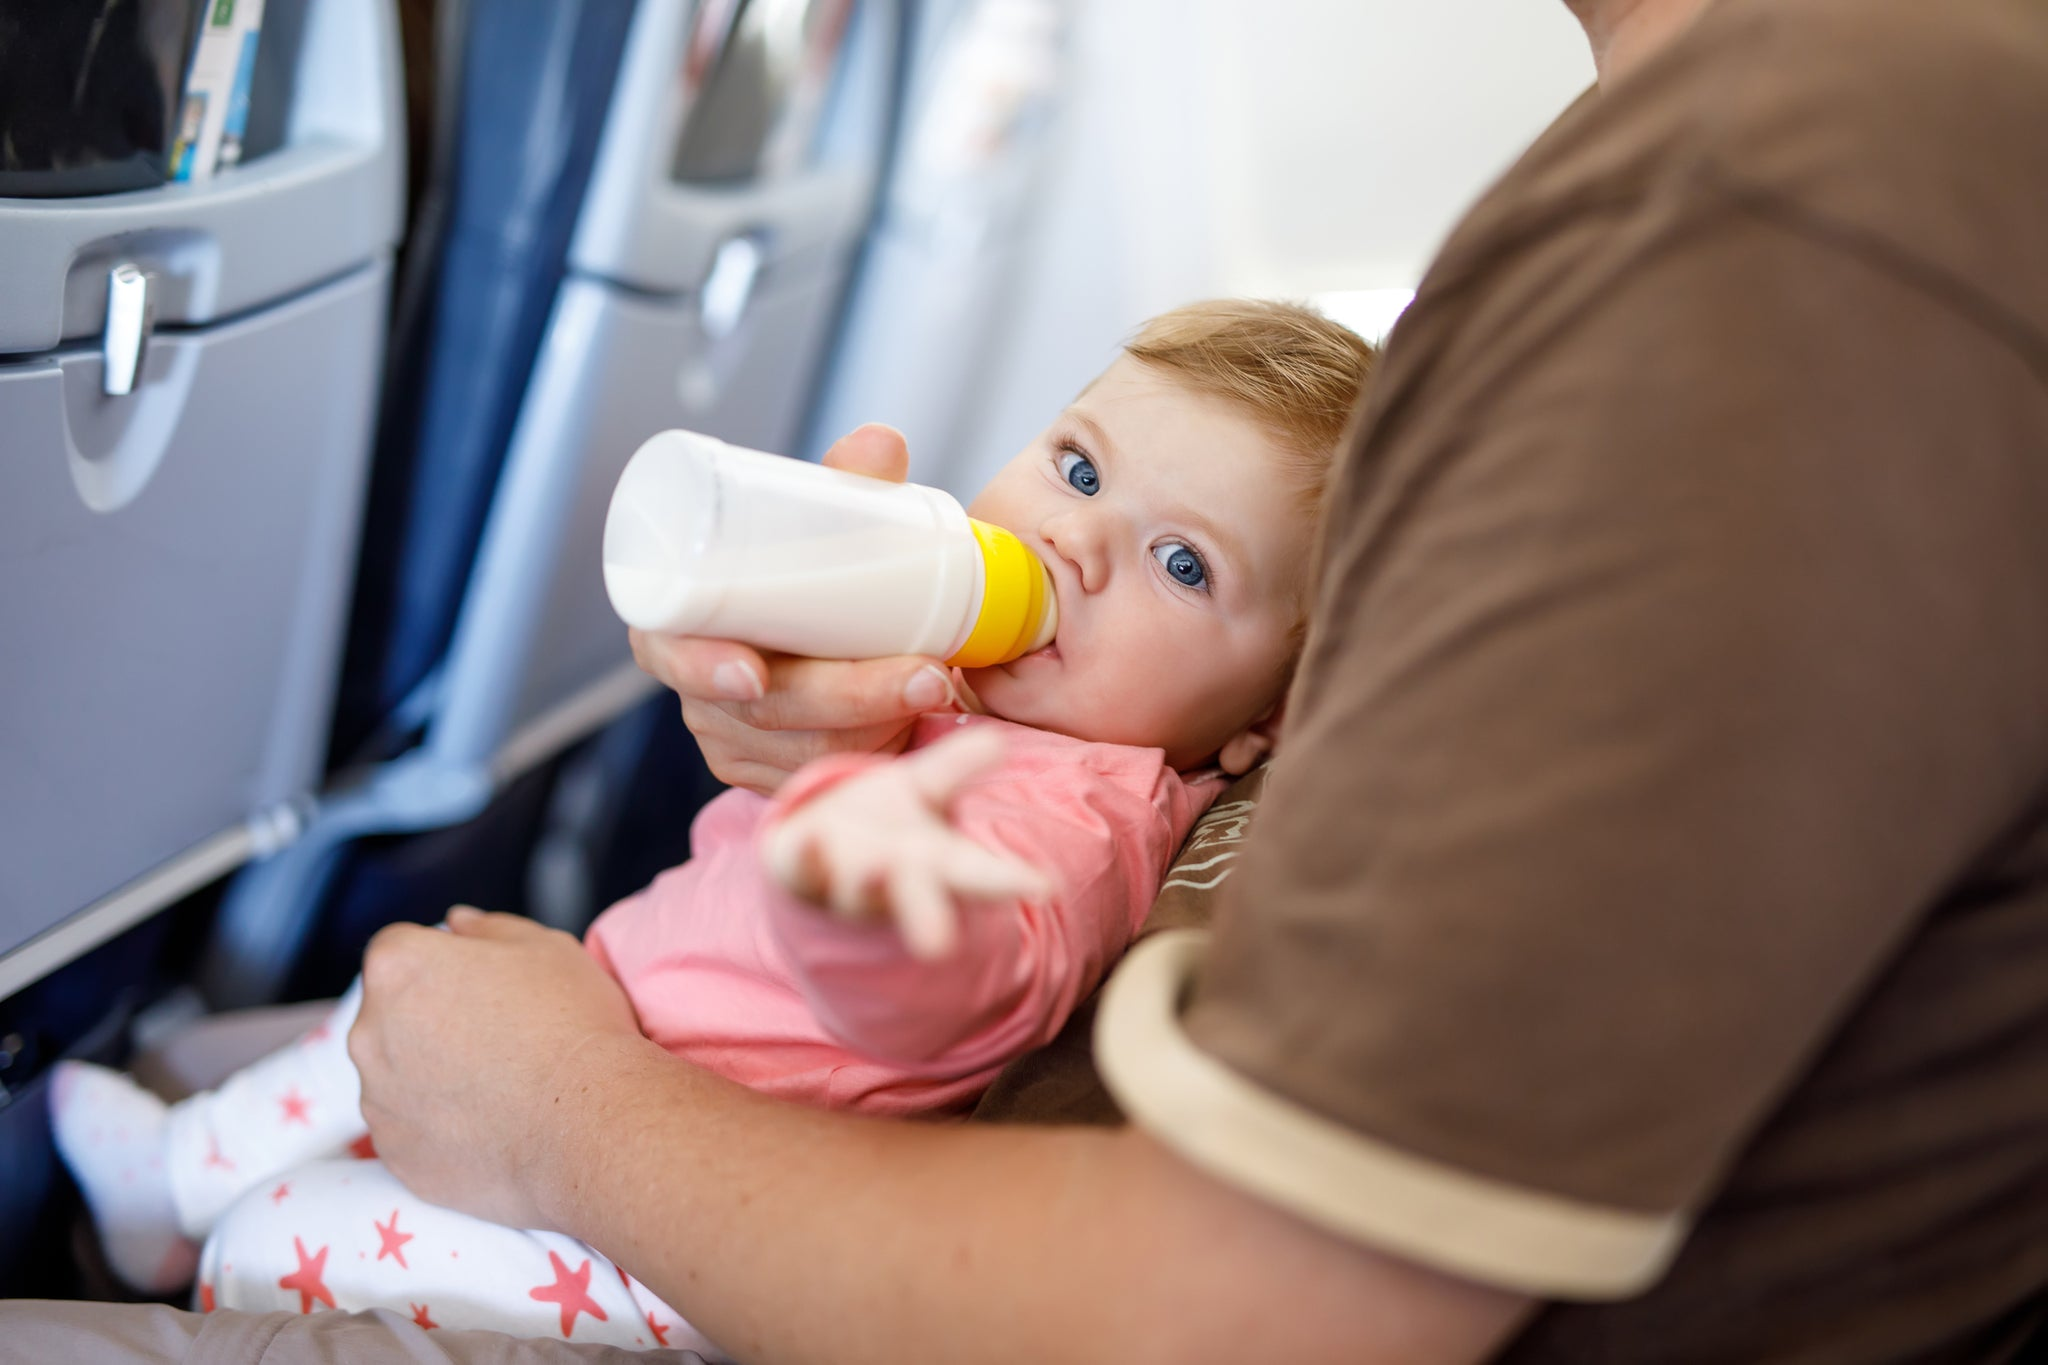 Bottle Feeding While Traveling